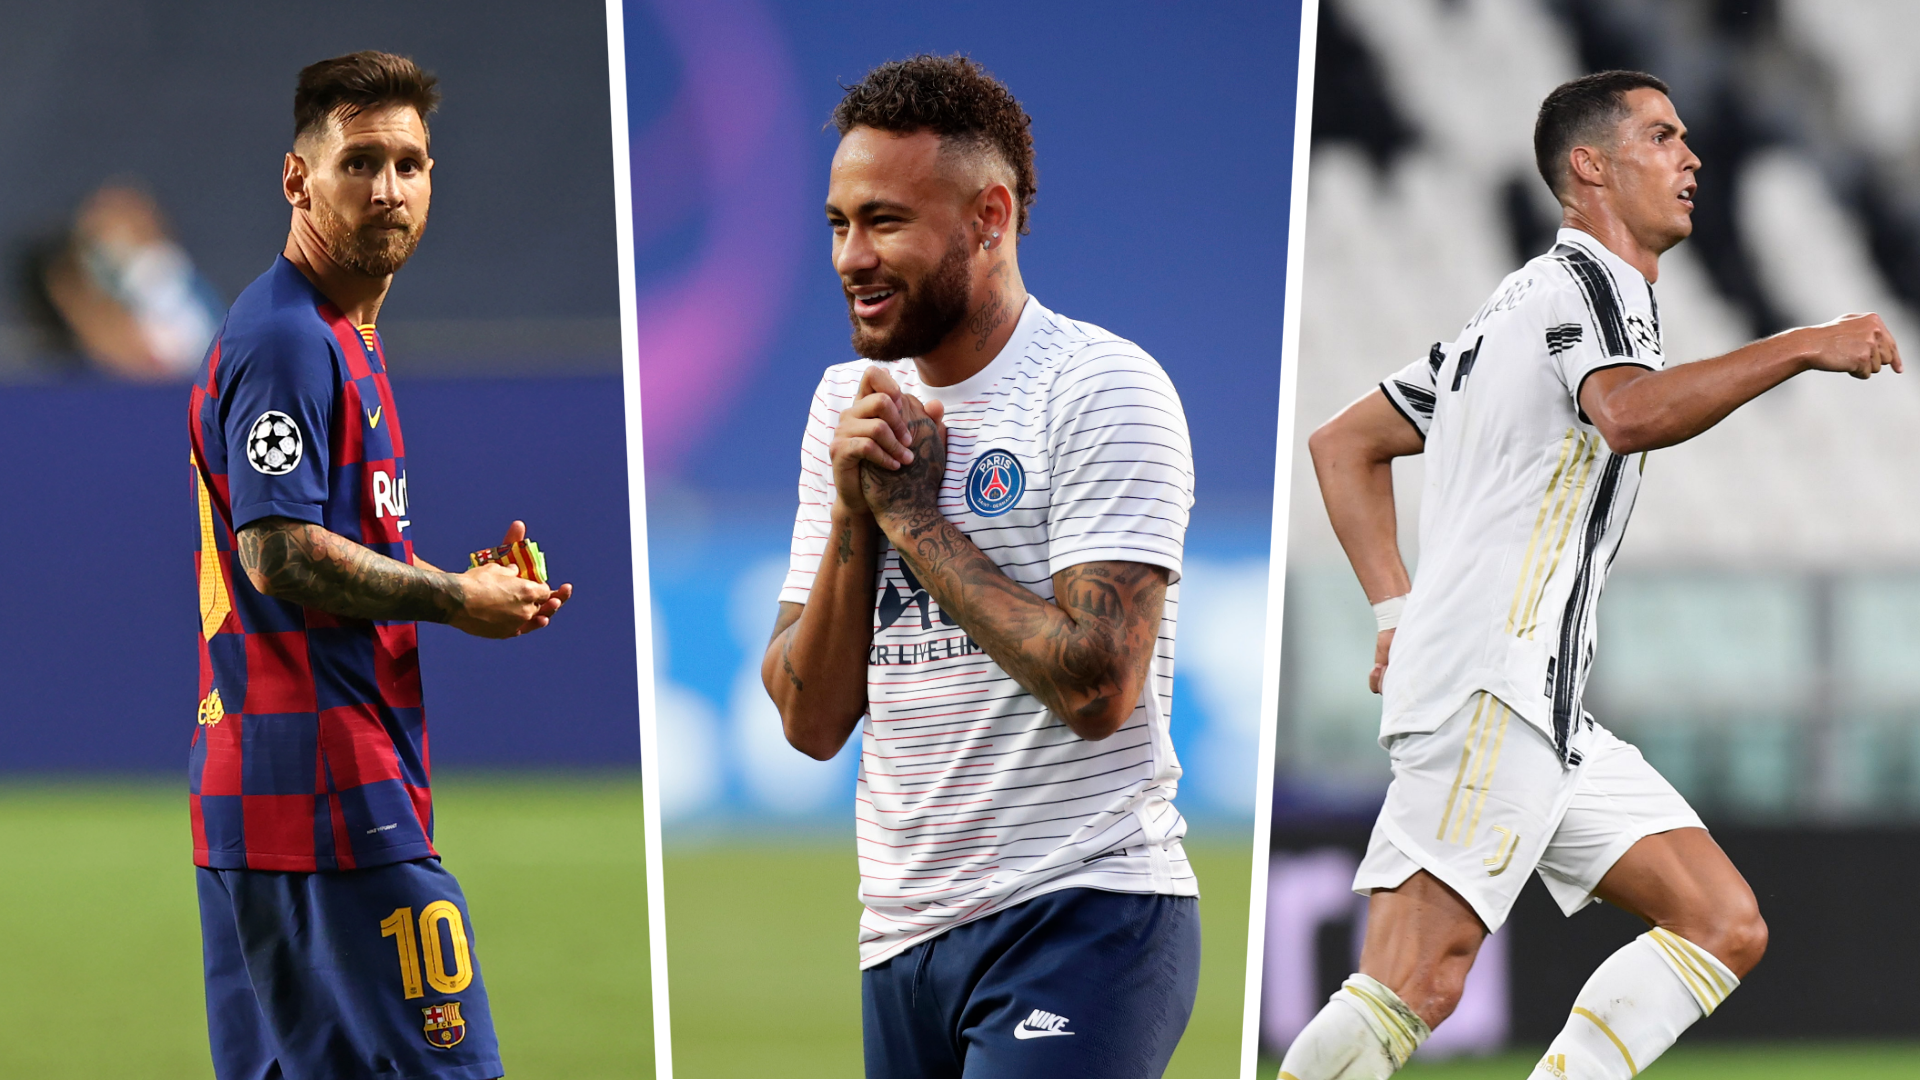 Neymar aiming for Ballon d'Or as he admits Messi and Ronaldo are 'not from this planet'